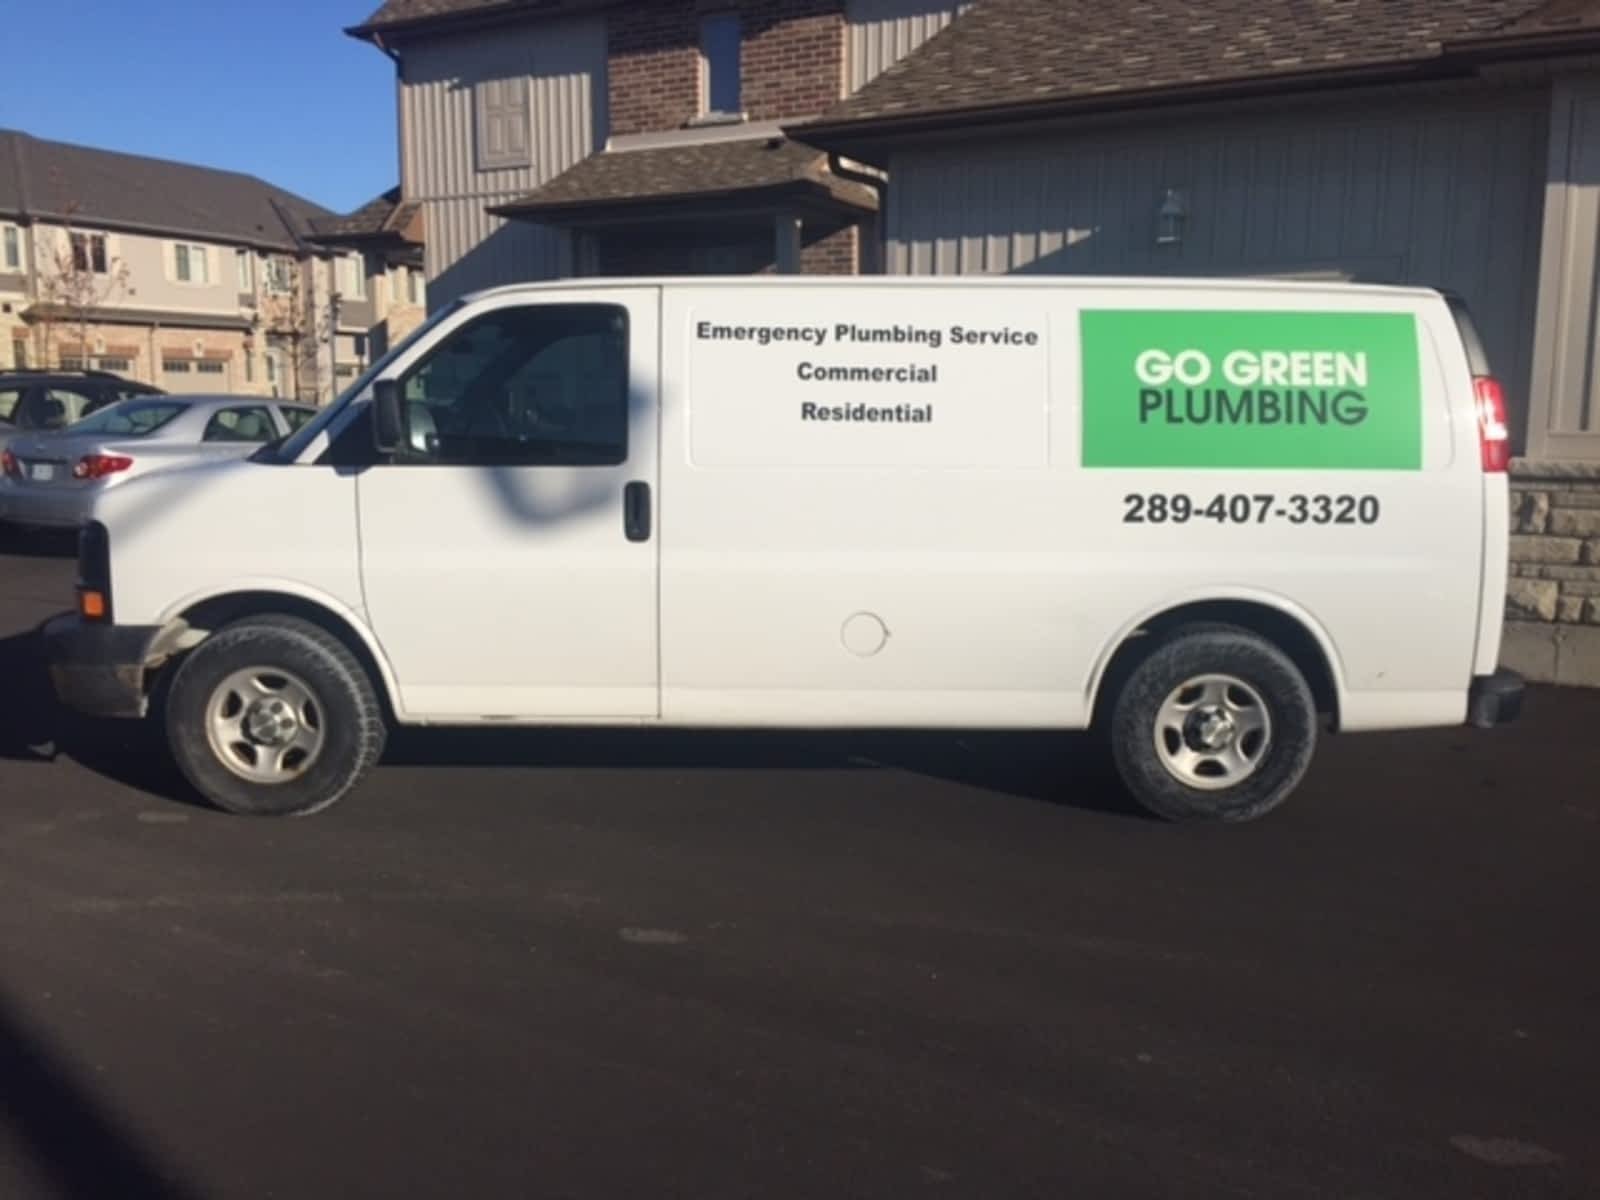 image contractors me service building remodeling plumbing home companies near